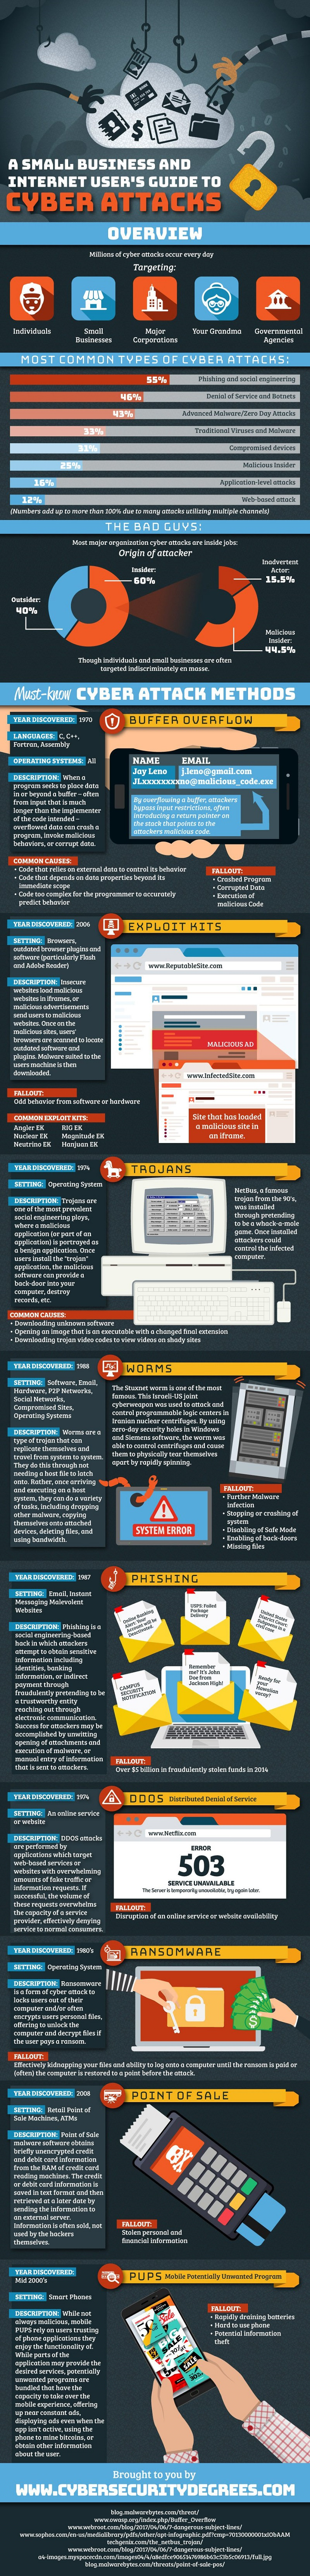 User's Guide to Cyber Attacks